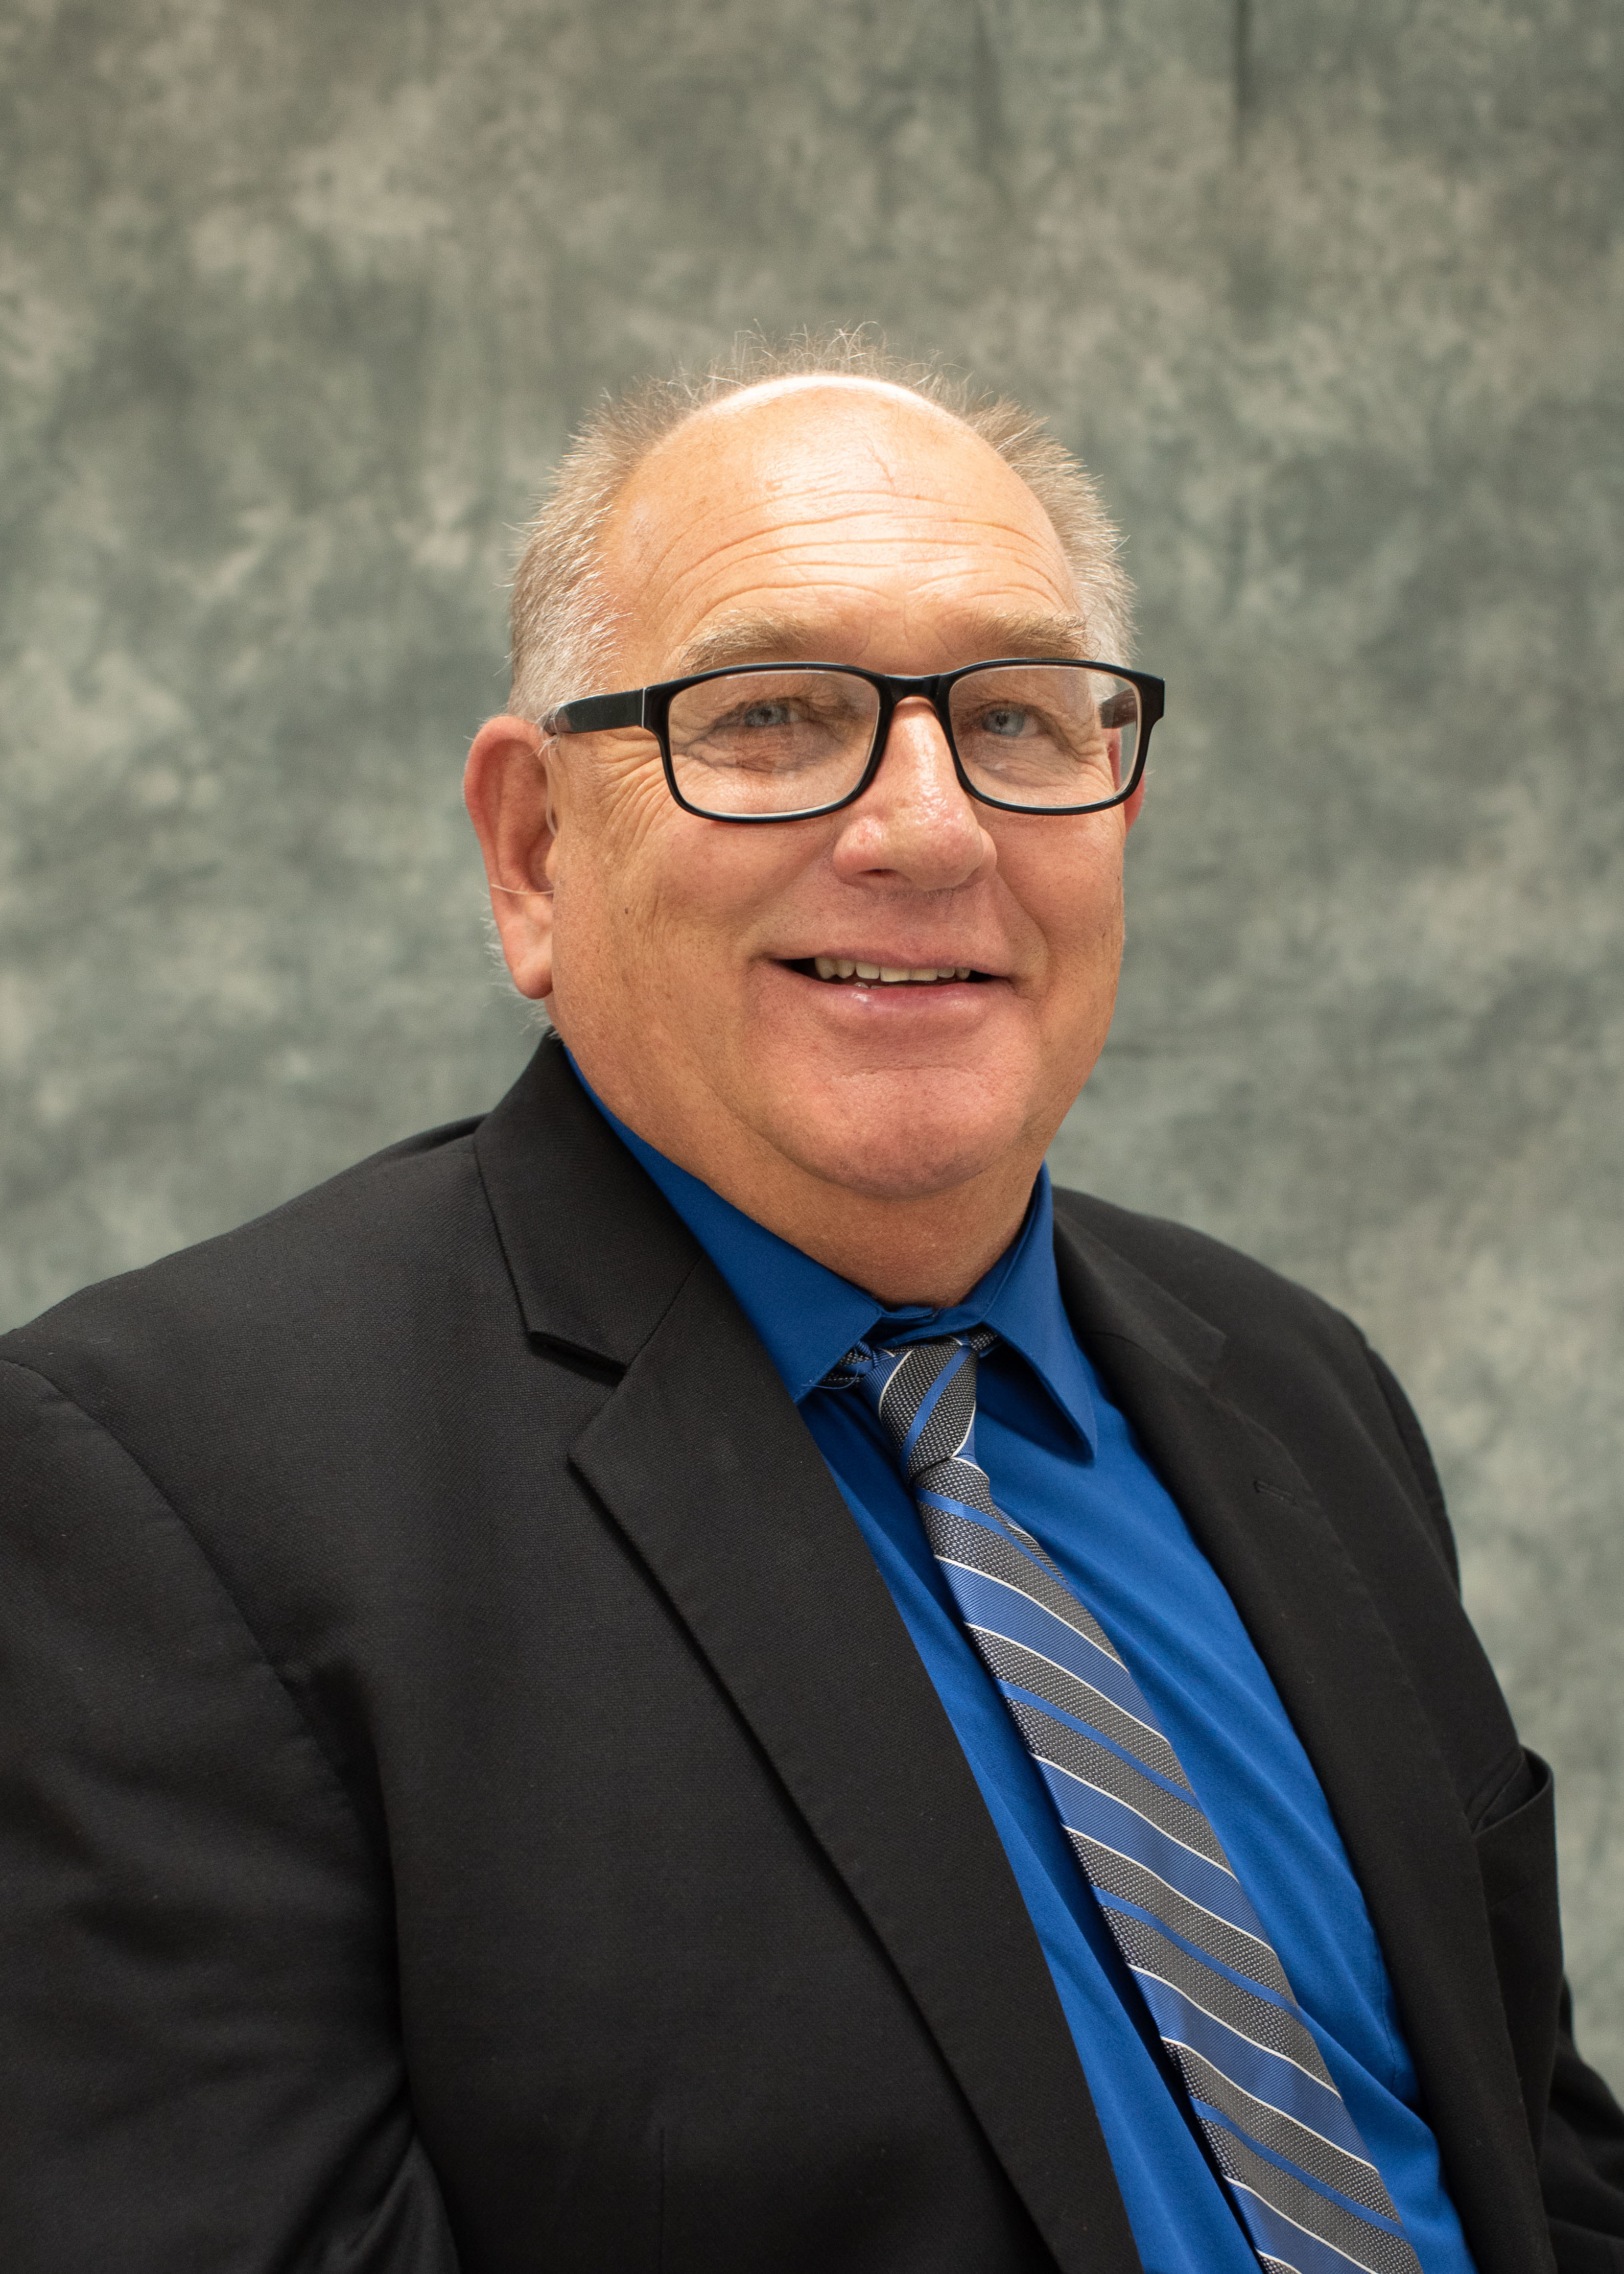 A photo of Terry Gibson, Board President.